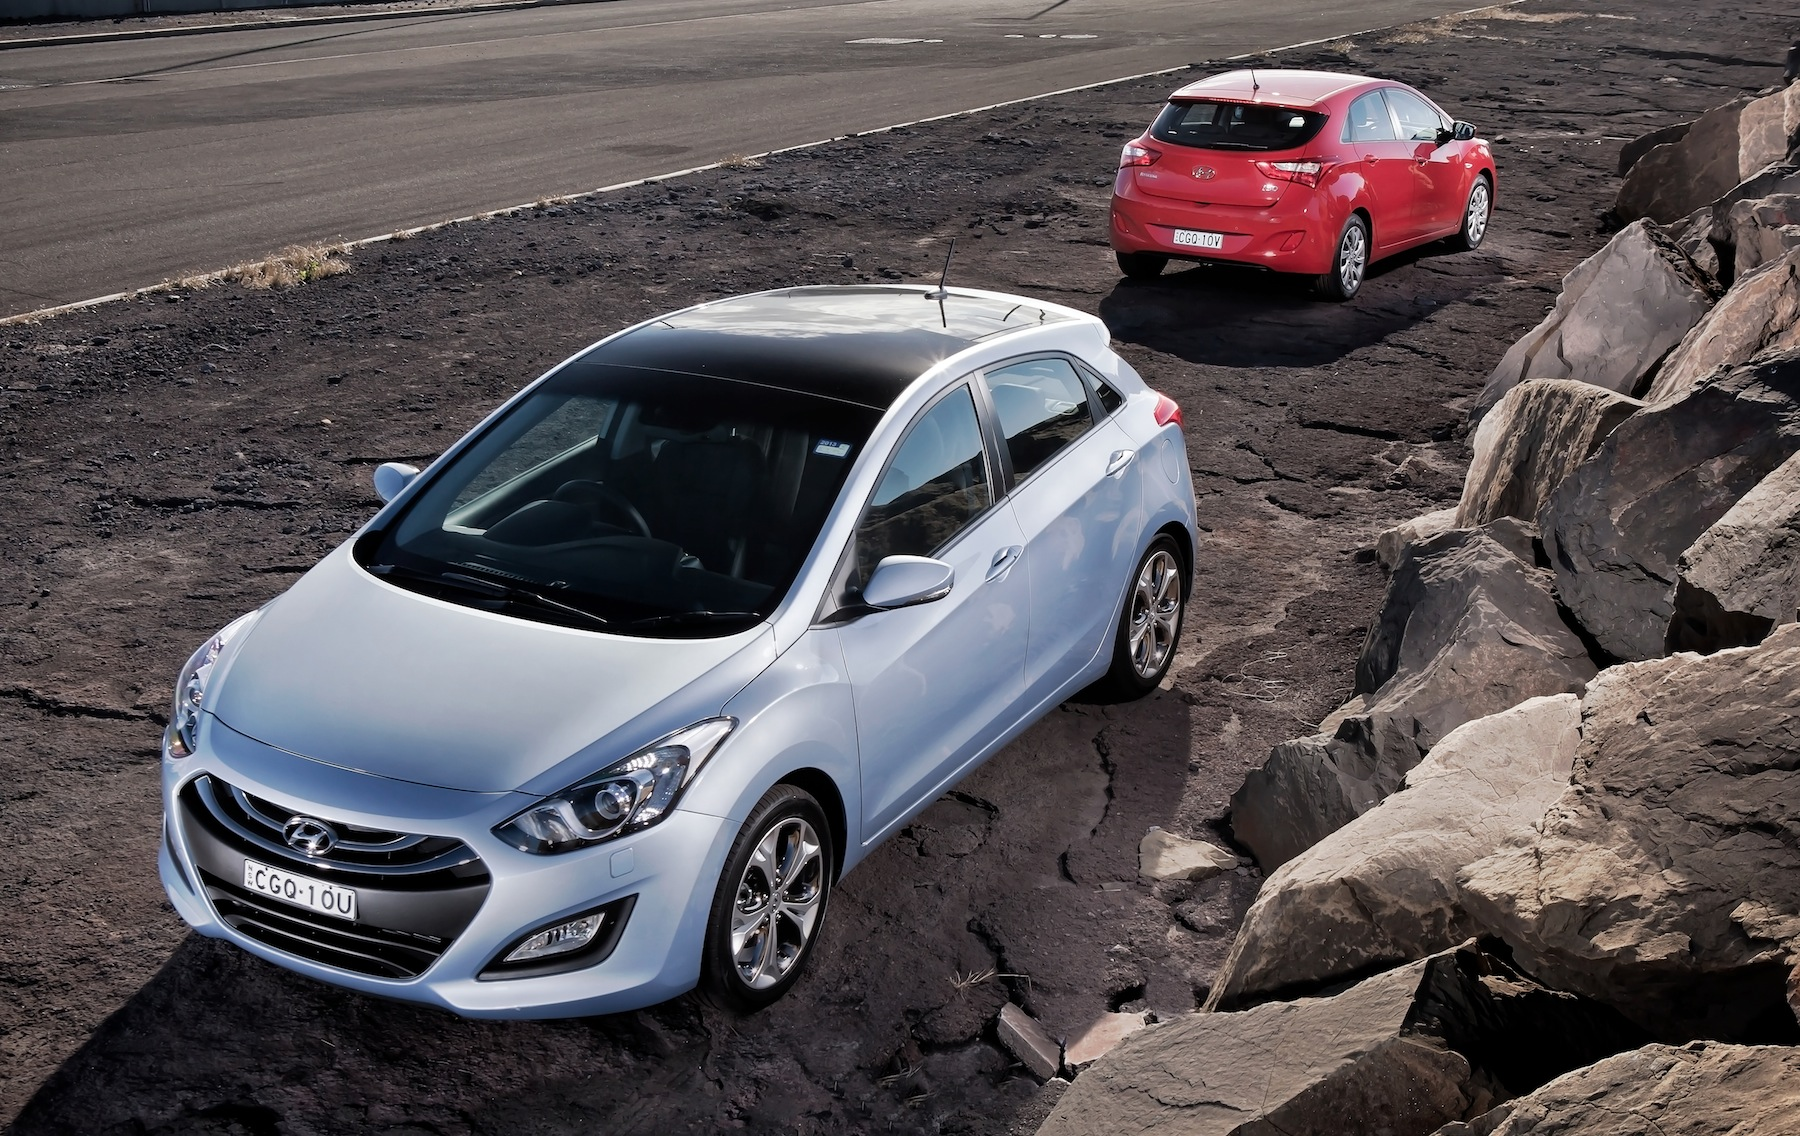 2015 Hyundai i40 – Launch Day | Release Date, Price and Specs